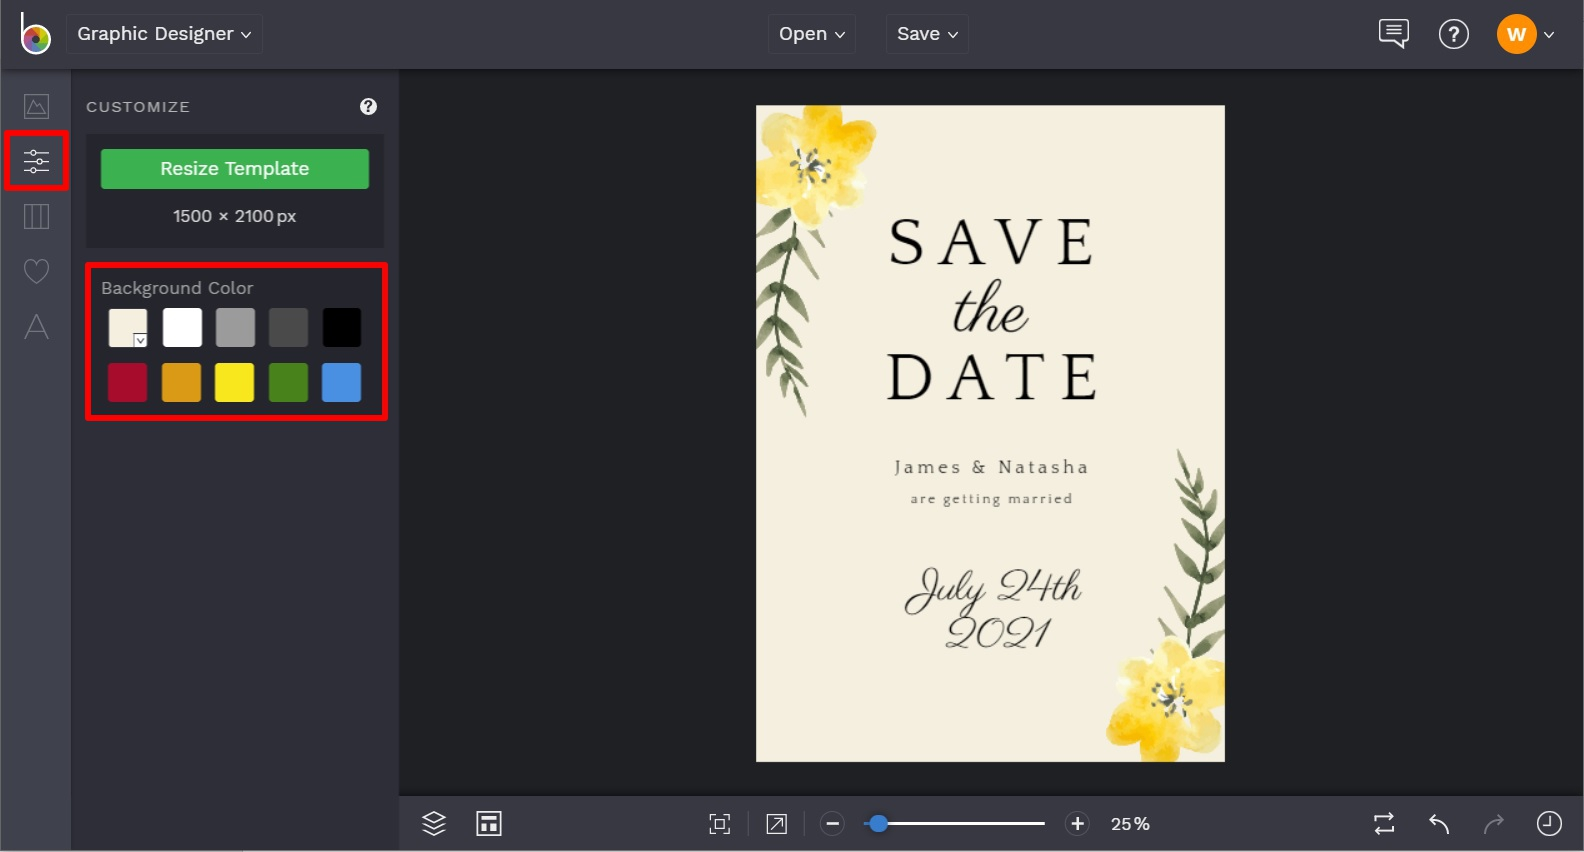 how to change the background color of the design template in BeFunky